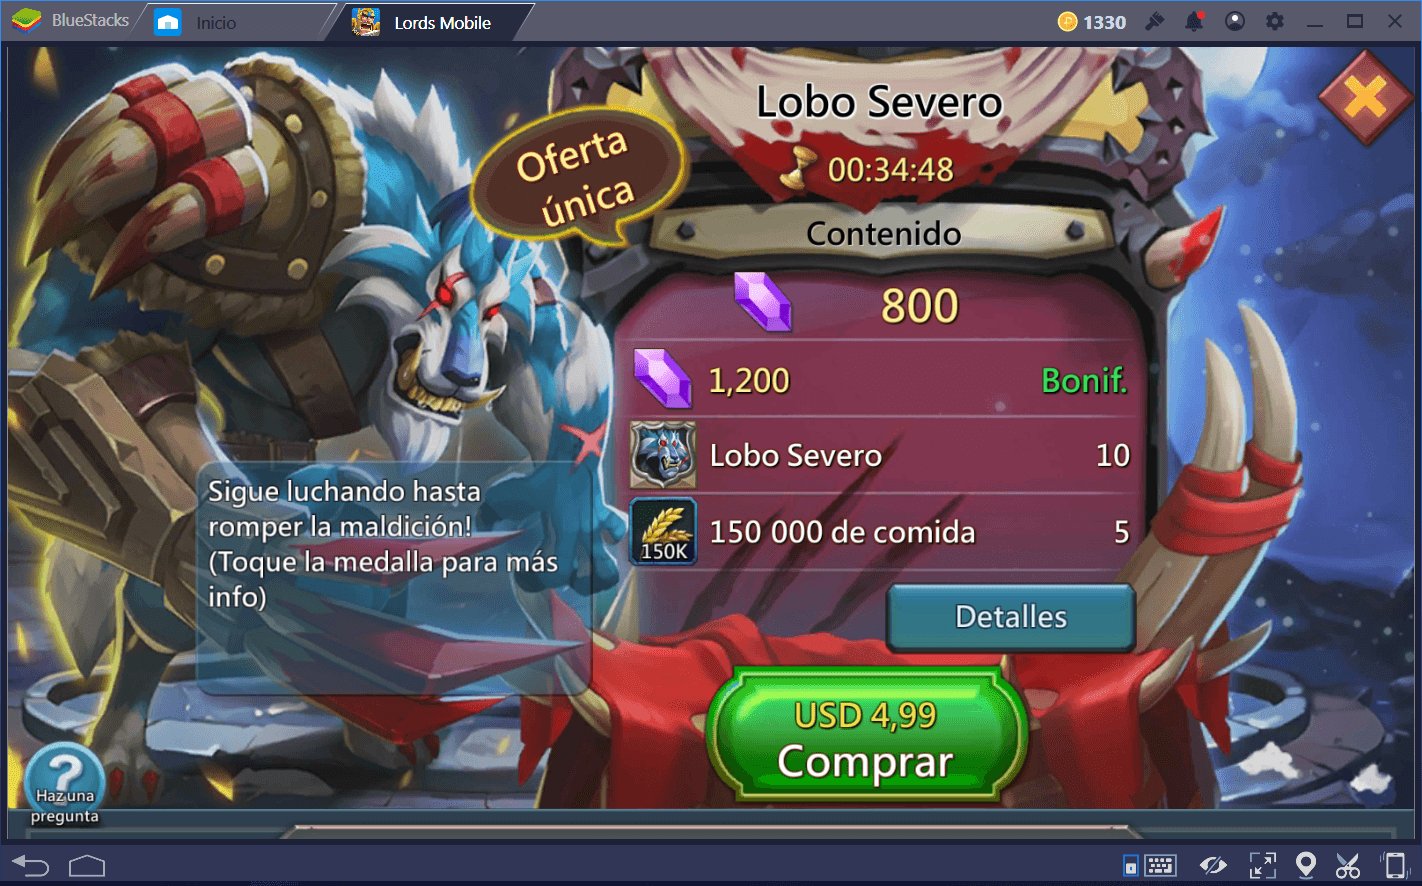 Guía de Héroes Gratuitos en Lords Mobile